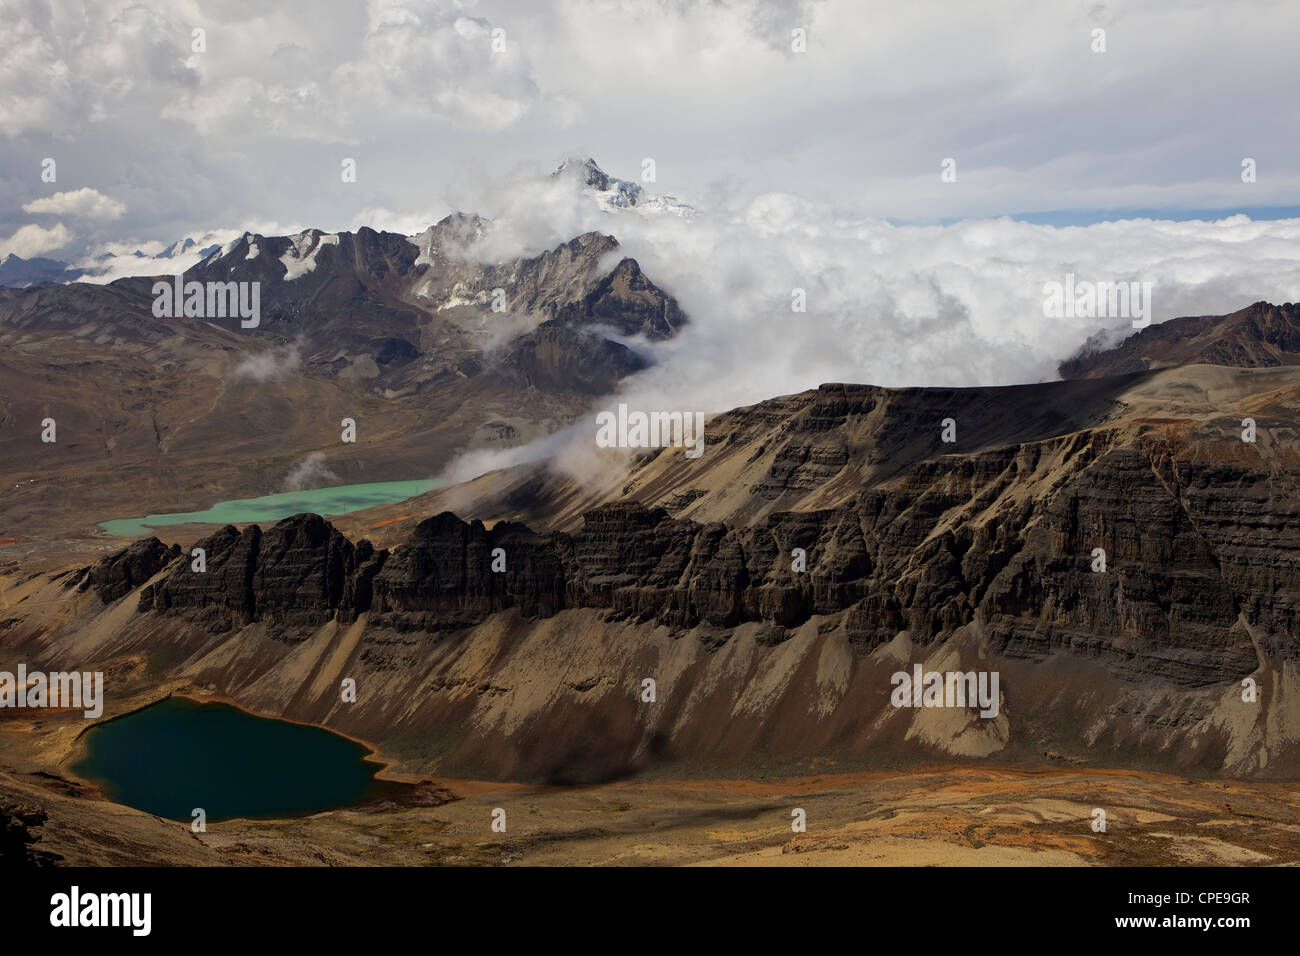 Cordillera Real, Calahuyo, Andes Mountains, Bolivia, South America - Stock Image